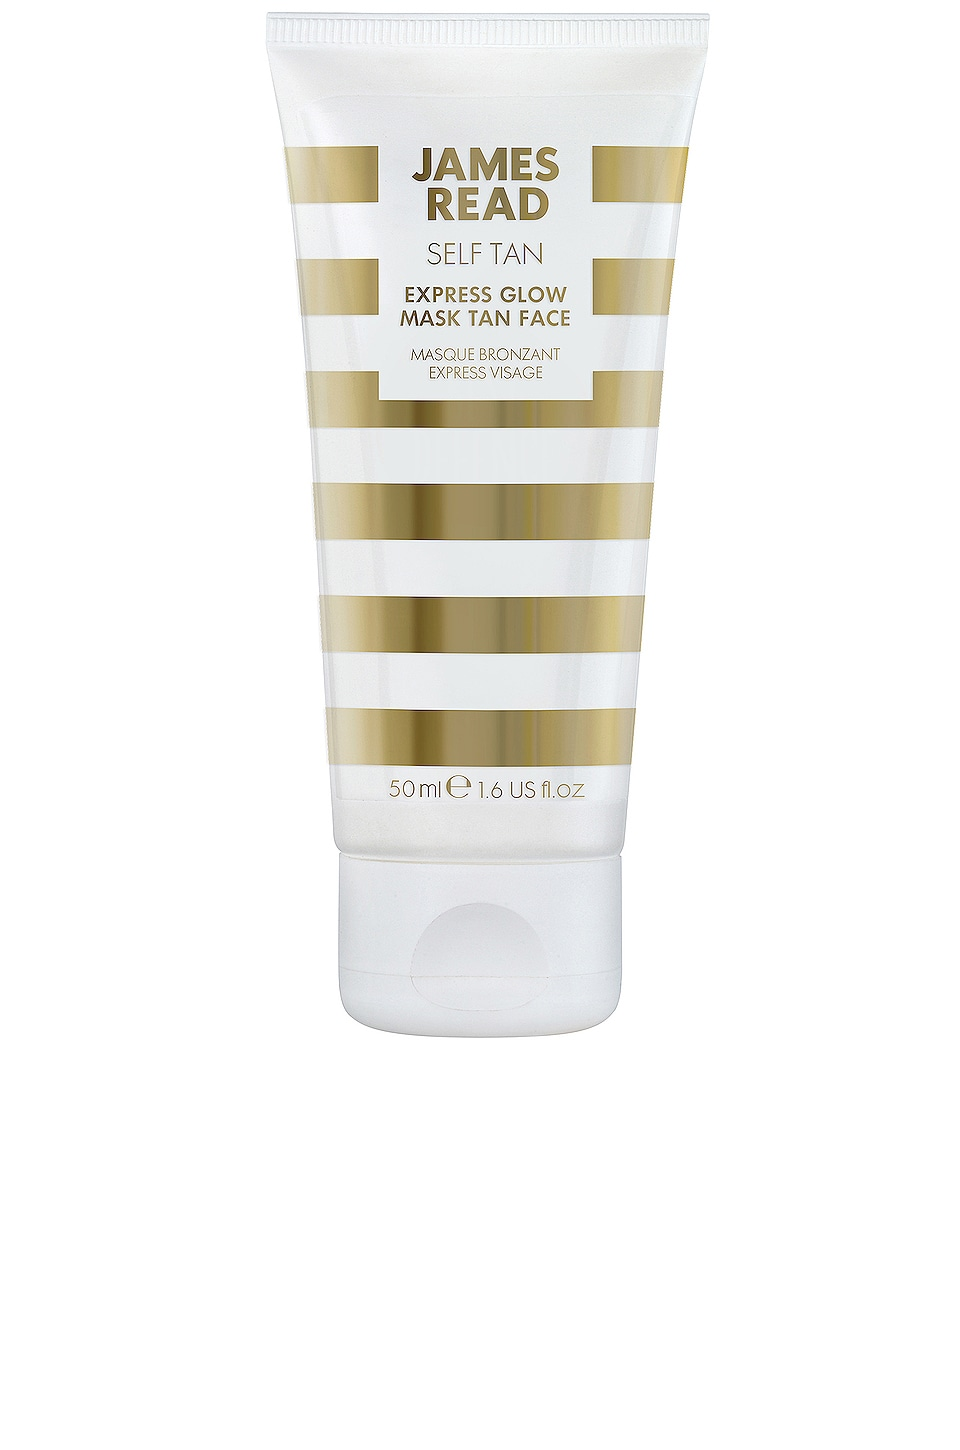 James Read Tan Express Glow Mask Face